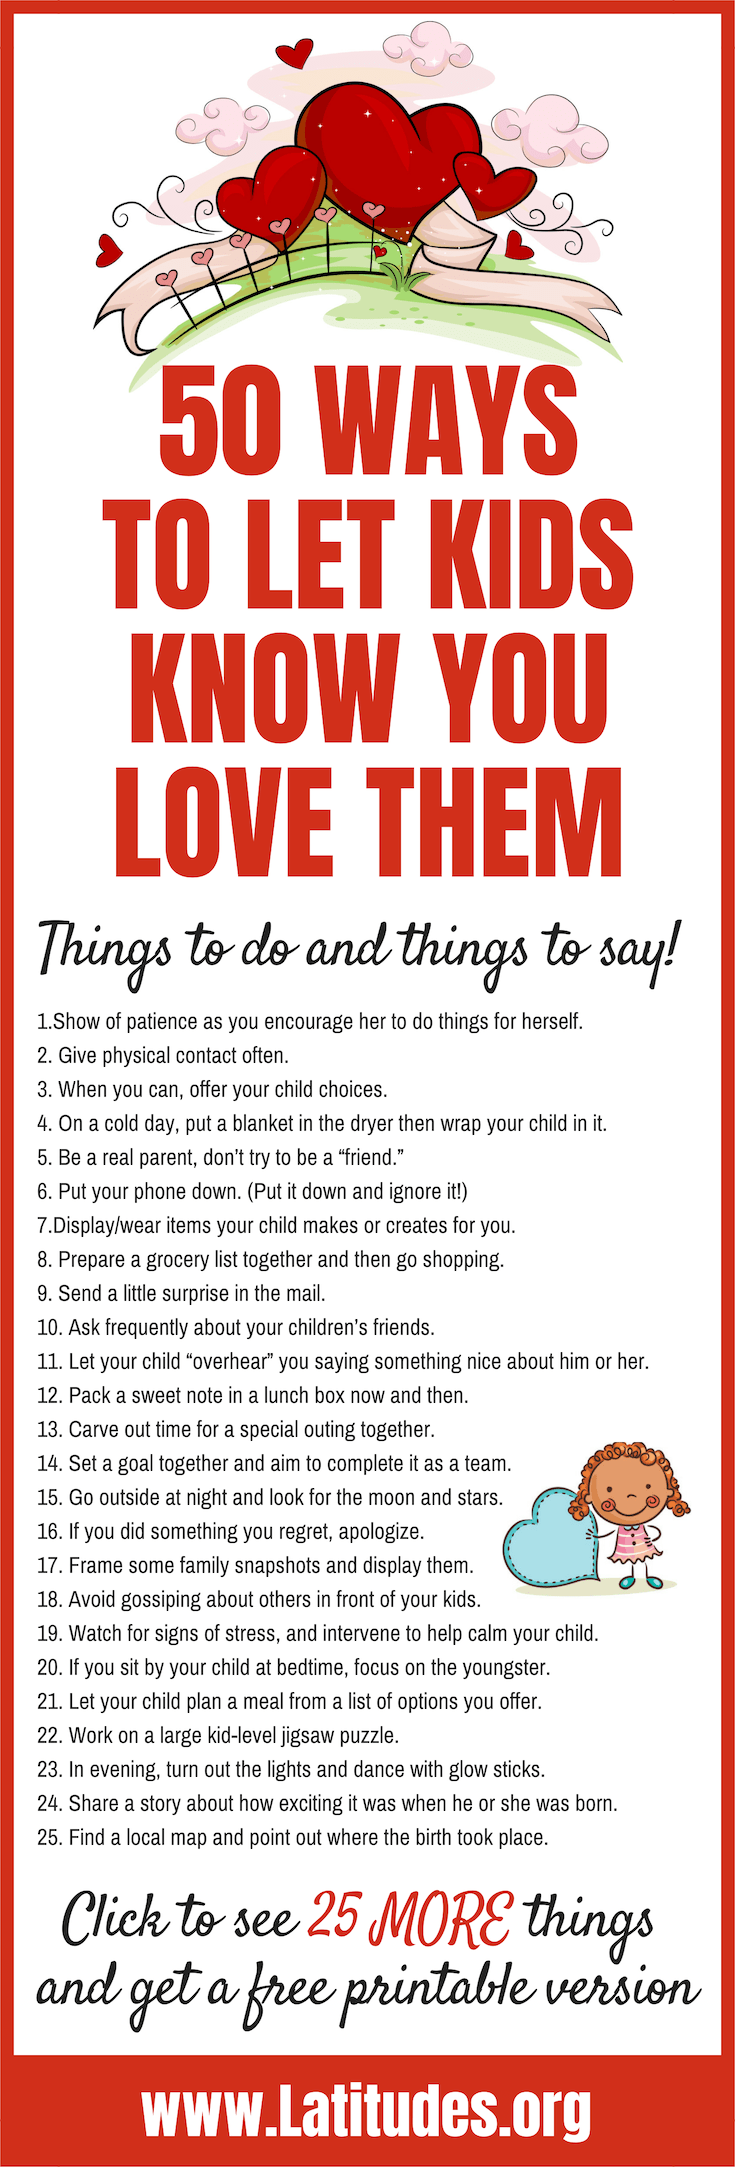 50 Ways to Let Kids Know You Love Them